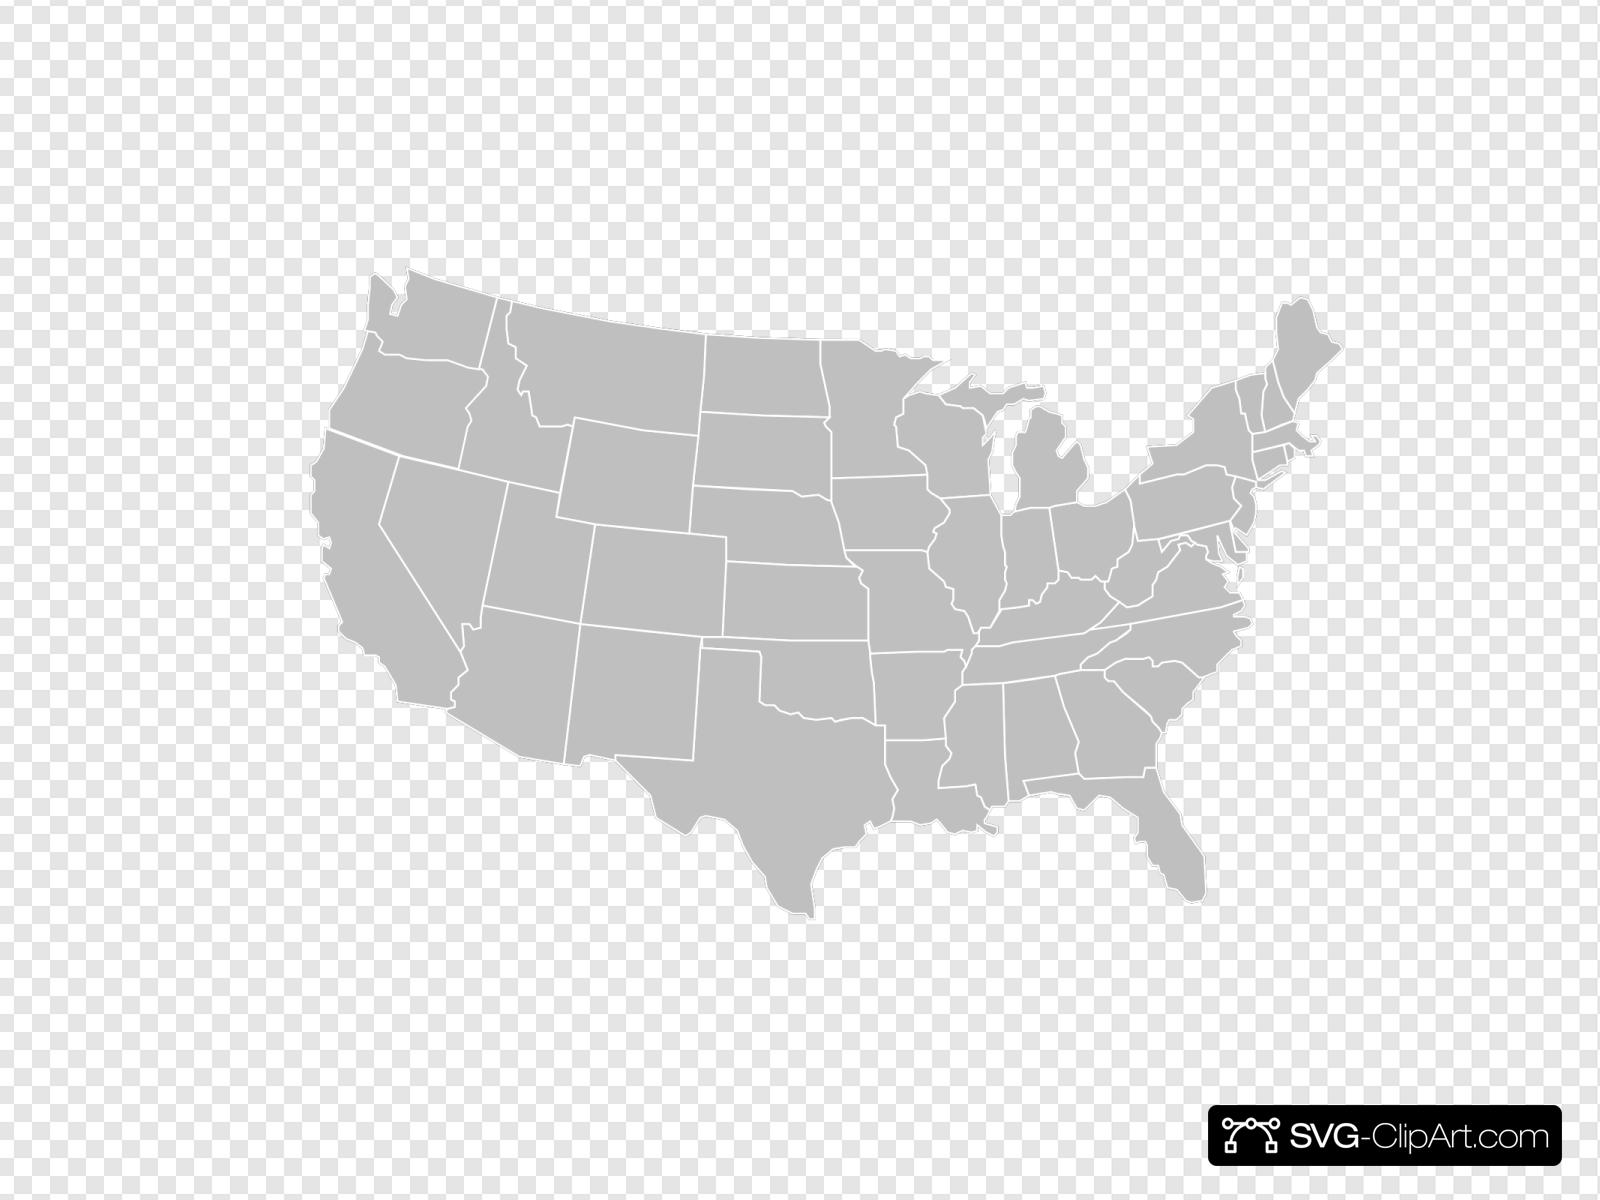 Blank Gray Usa Map White Lines Clip art, Icon and SVG - SVG ...